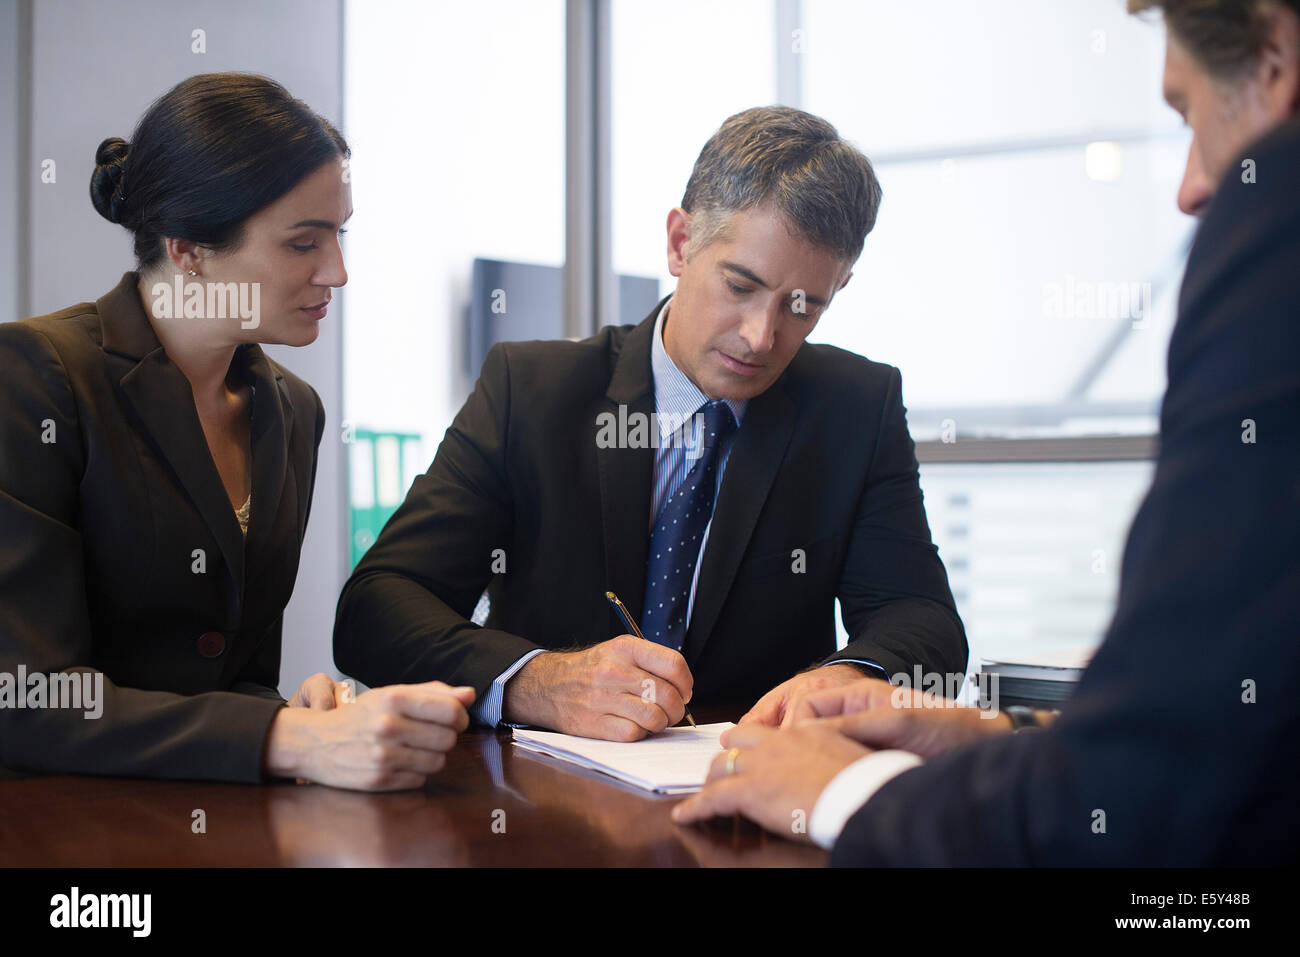 Business meeting, businessman signing document while associates observe - Stock Image